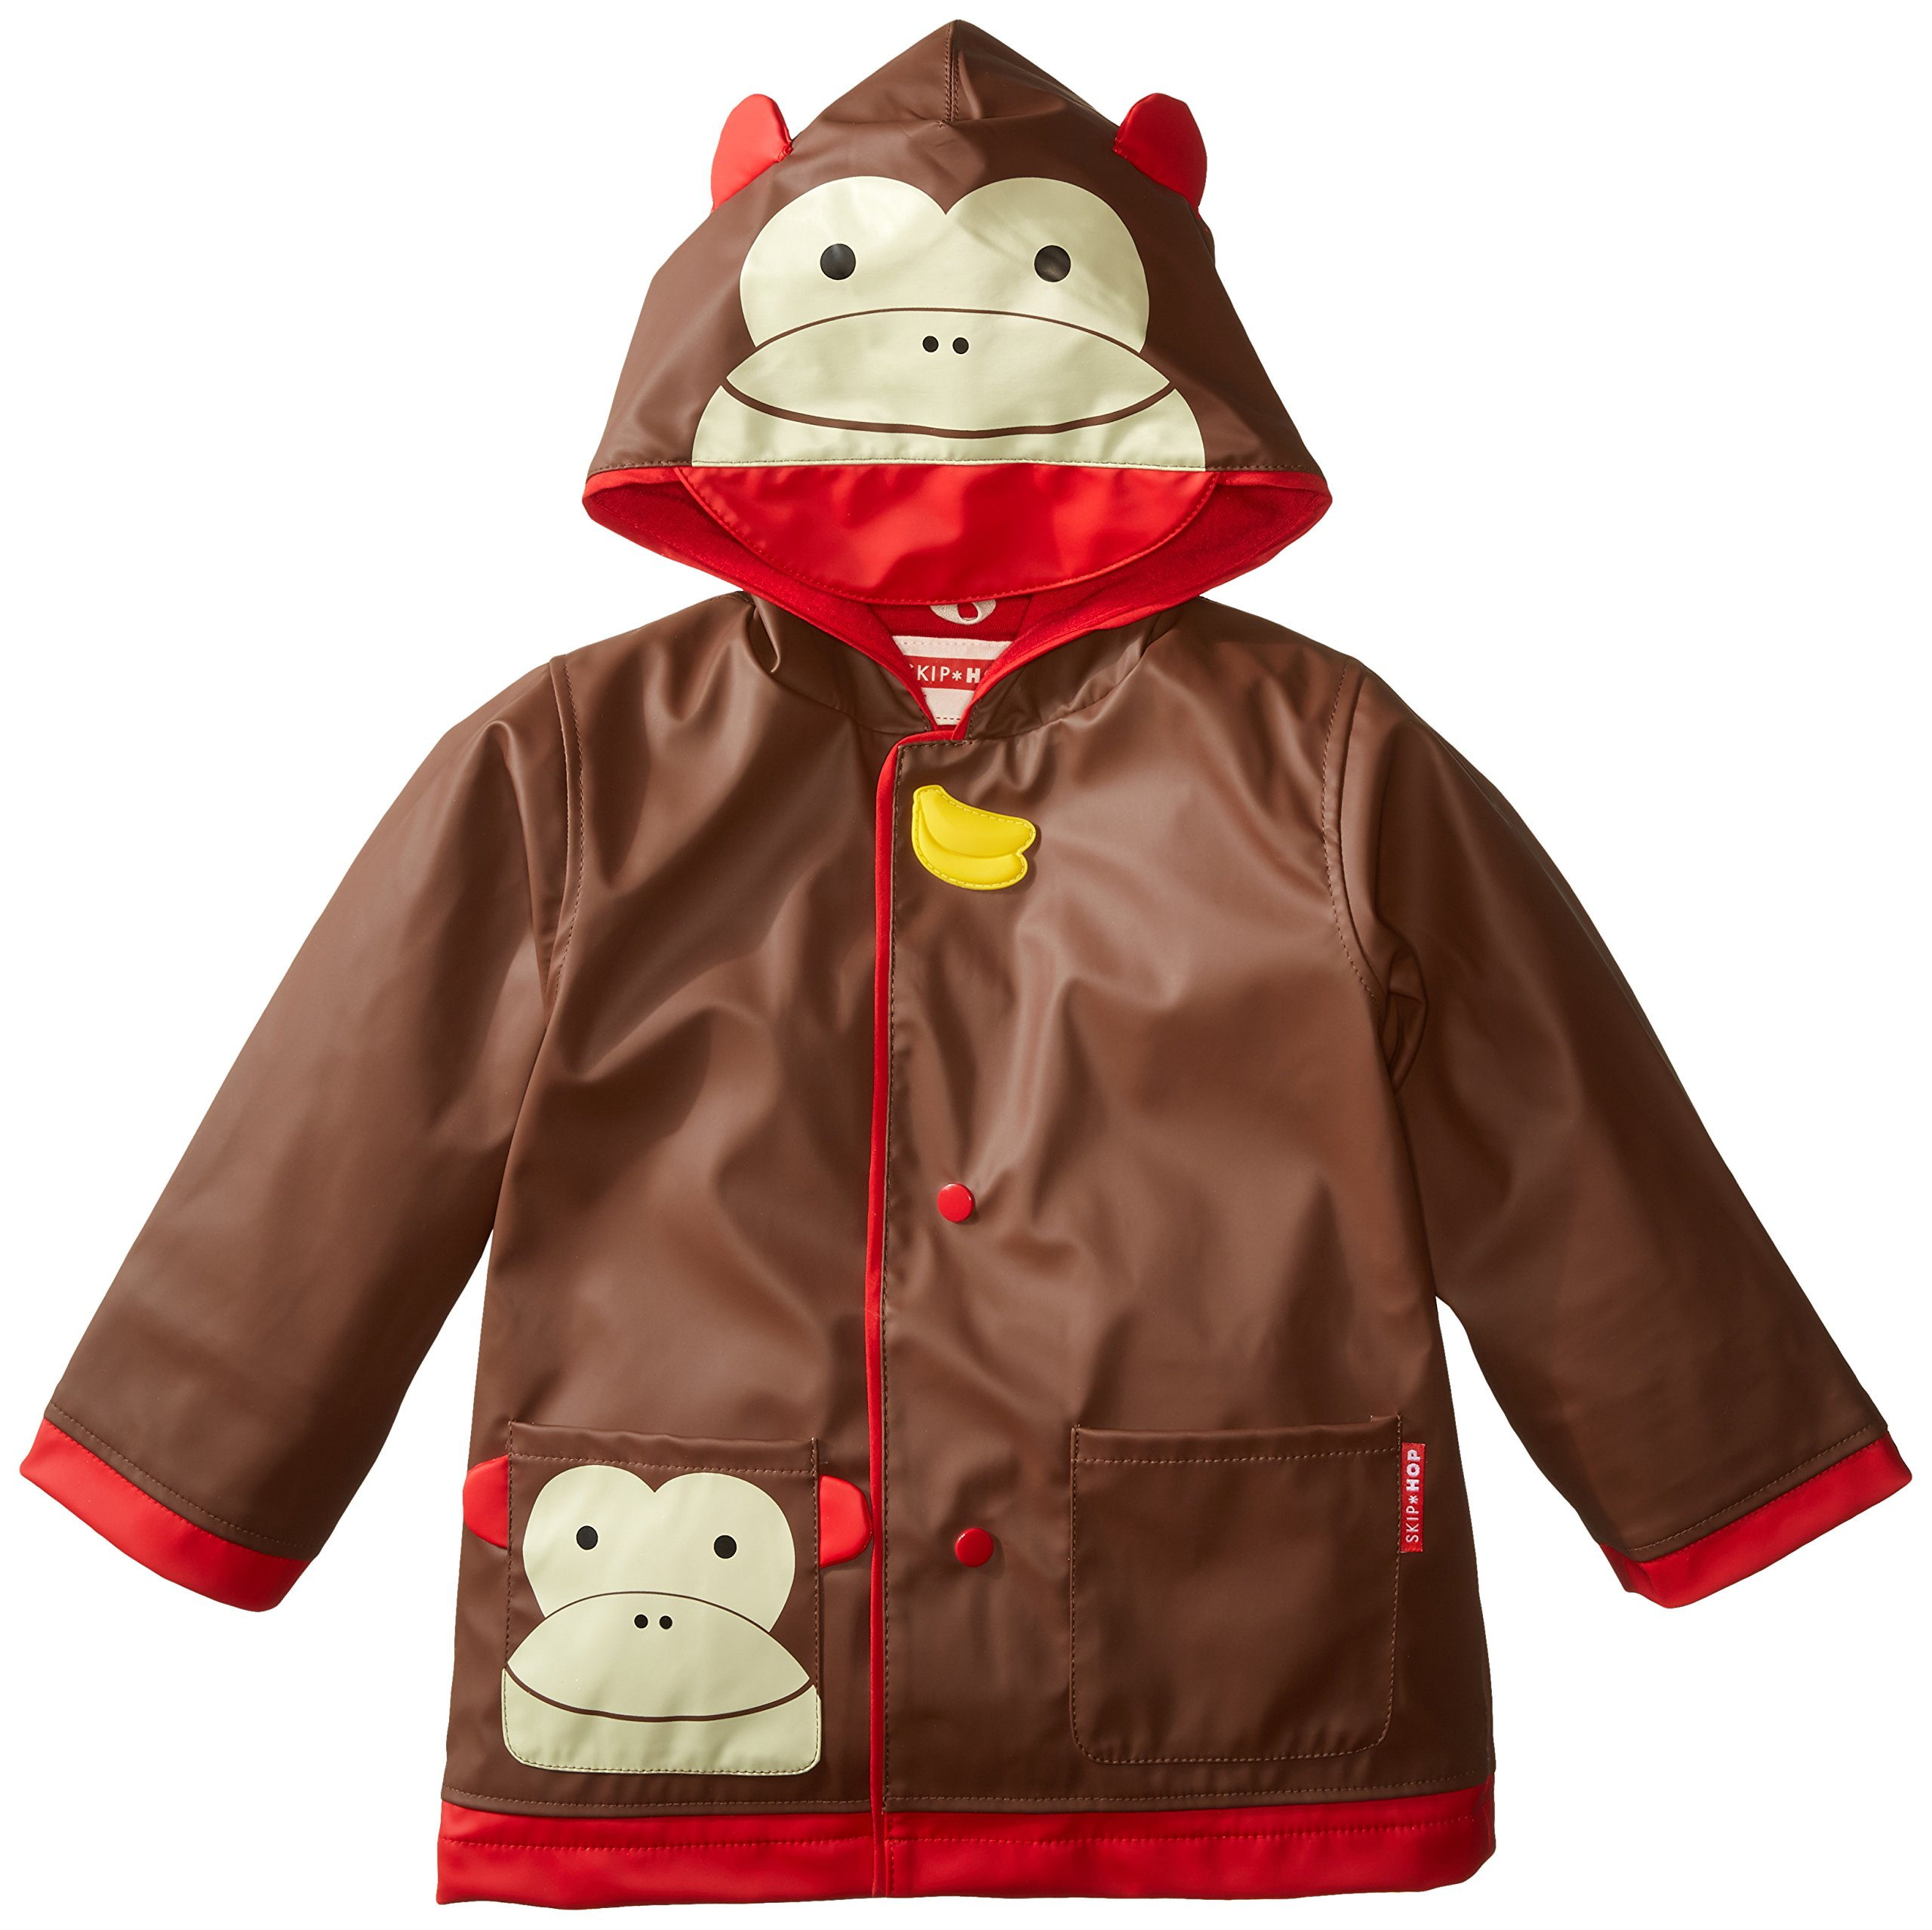 Skip Hop Zoo Little Kid and Toddler Hooded Rain Jacket, Medium, Multi Marshall Monkey by Skip Hop